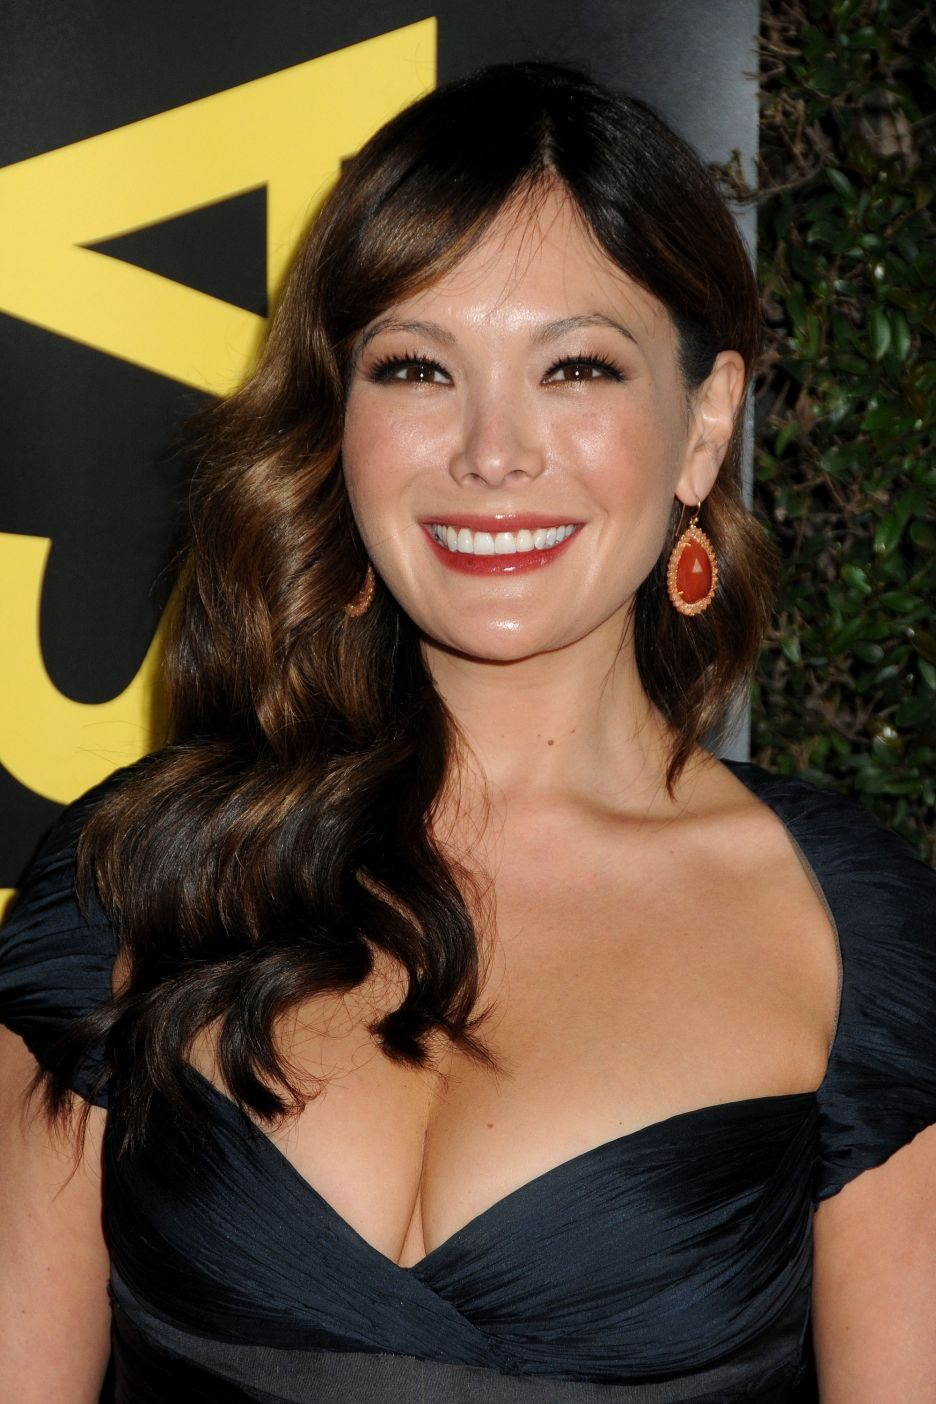 Lindsay Price - 2018 Dark Brown hair & simple hair style. Current length:  long hair (bra strap length)